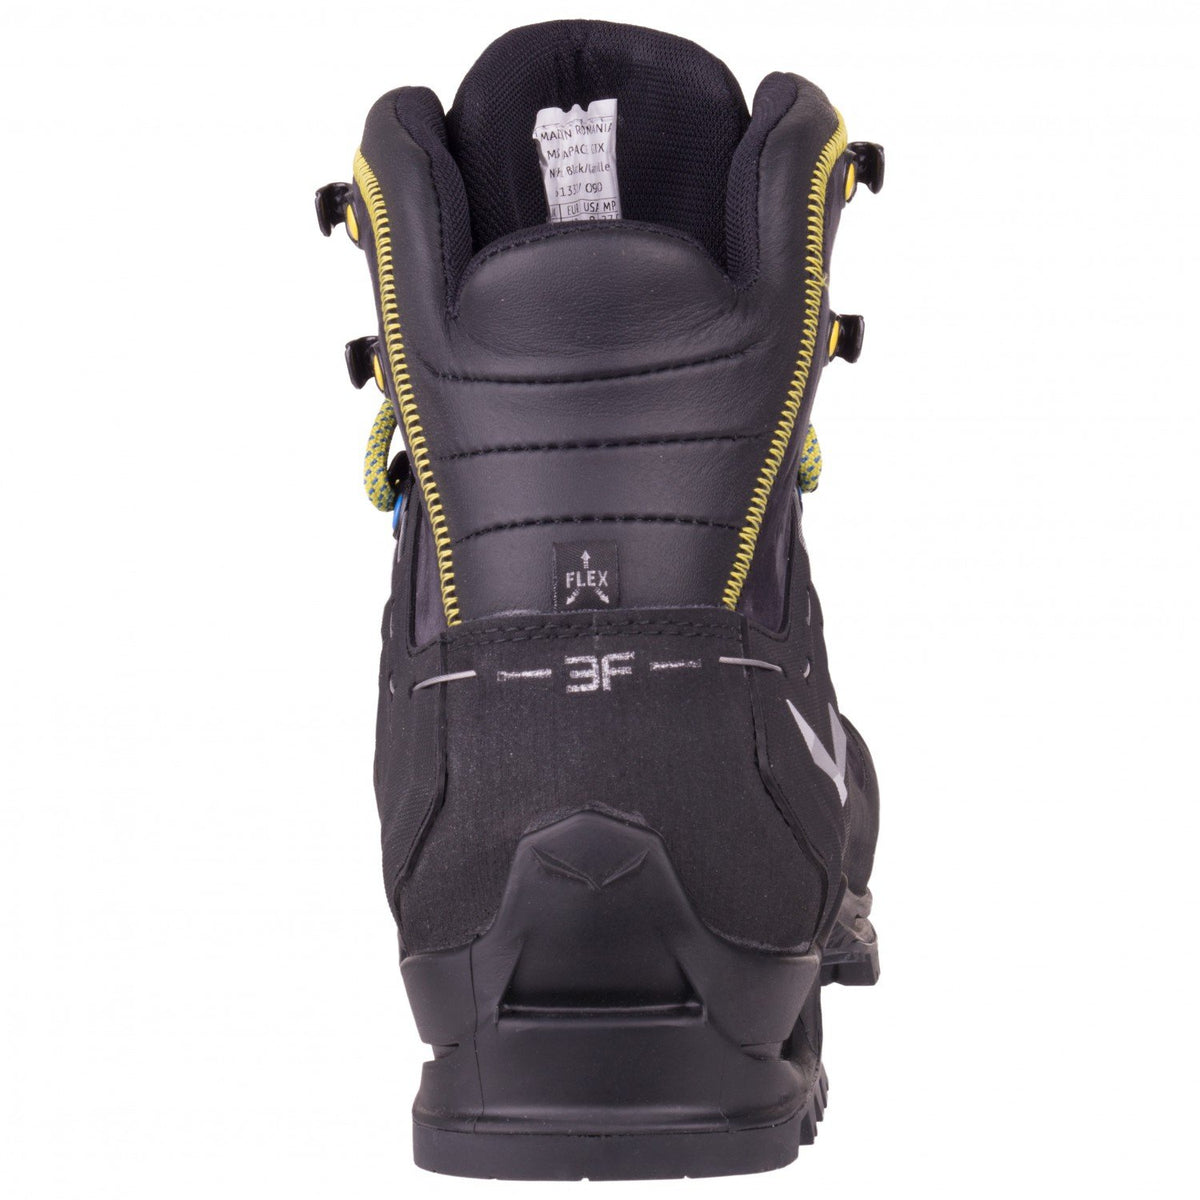 Salewa Rapace GTX Mountaineering Boot, showing heel and 3F Ankle support